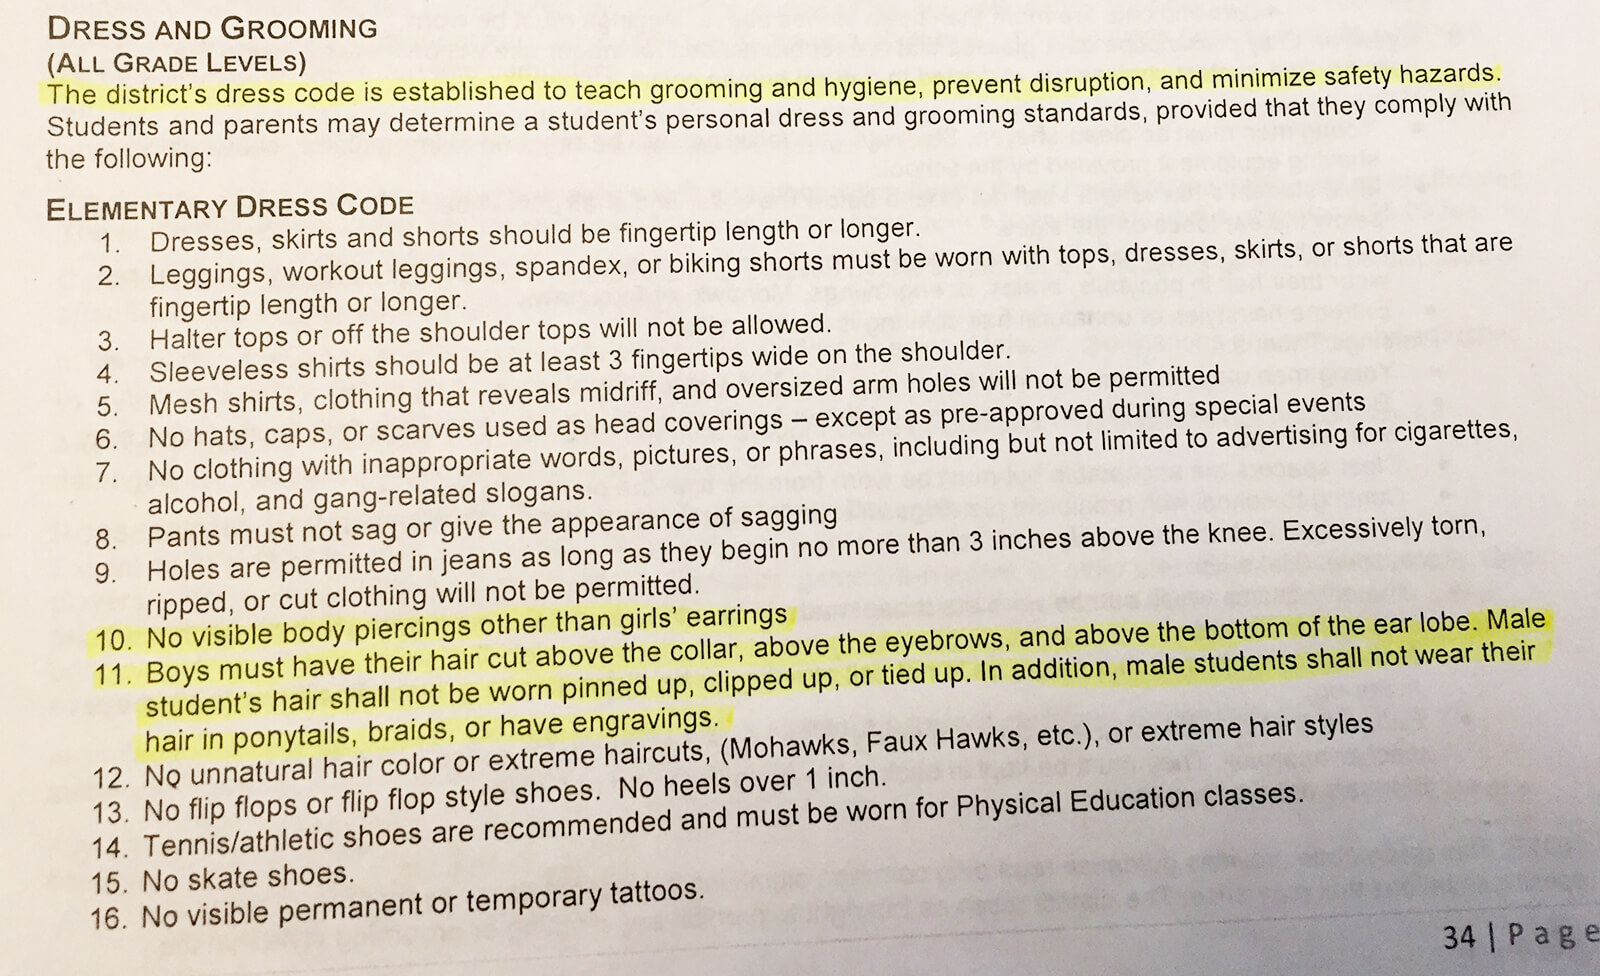 Elementary School Dress Code Grooming Policy